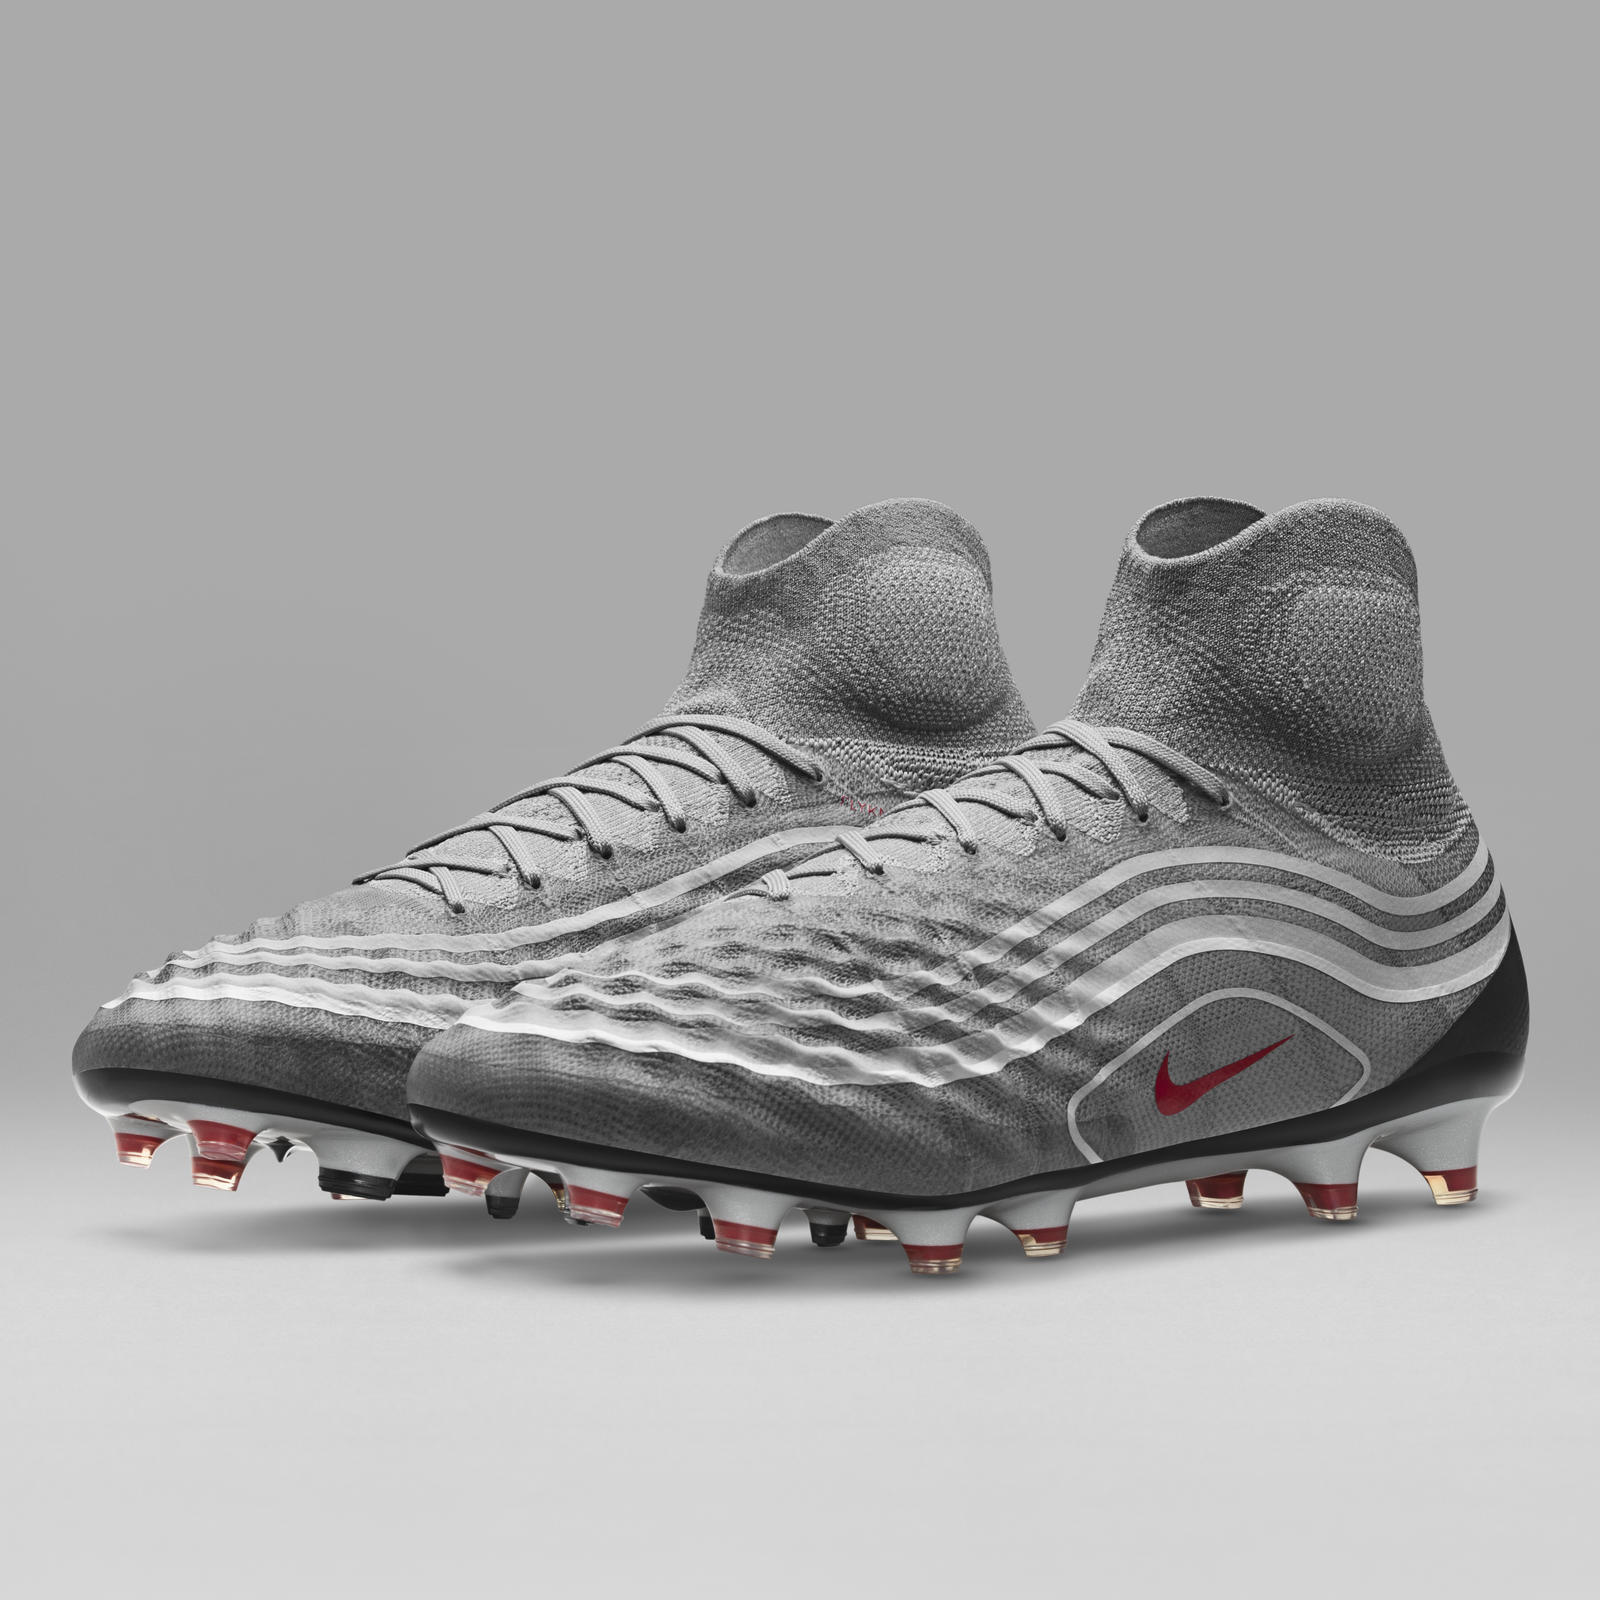 79af79e8870e Nike Football Unveils Boots Inspired by Air Max Icons - Nike News